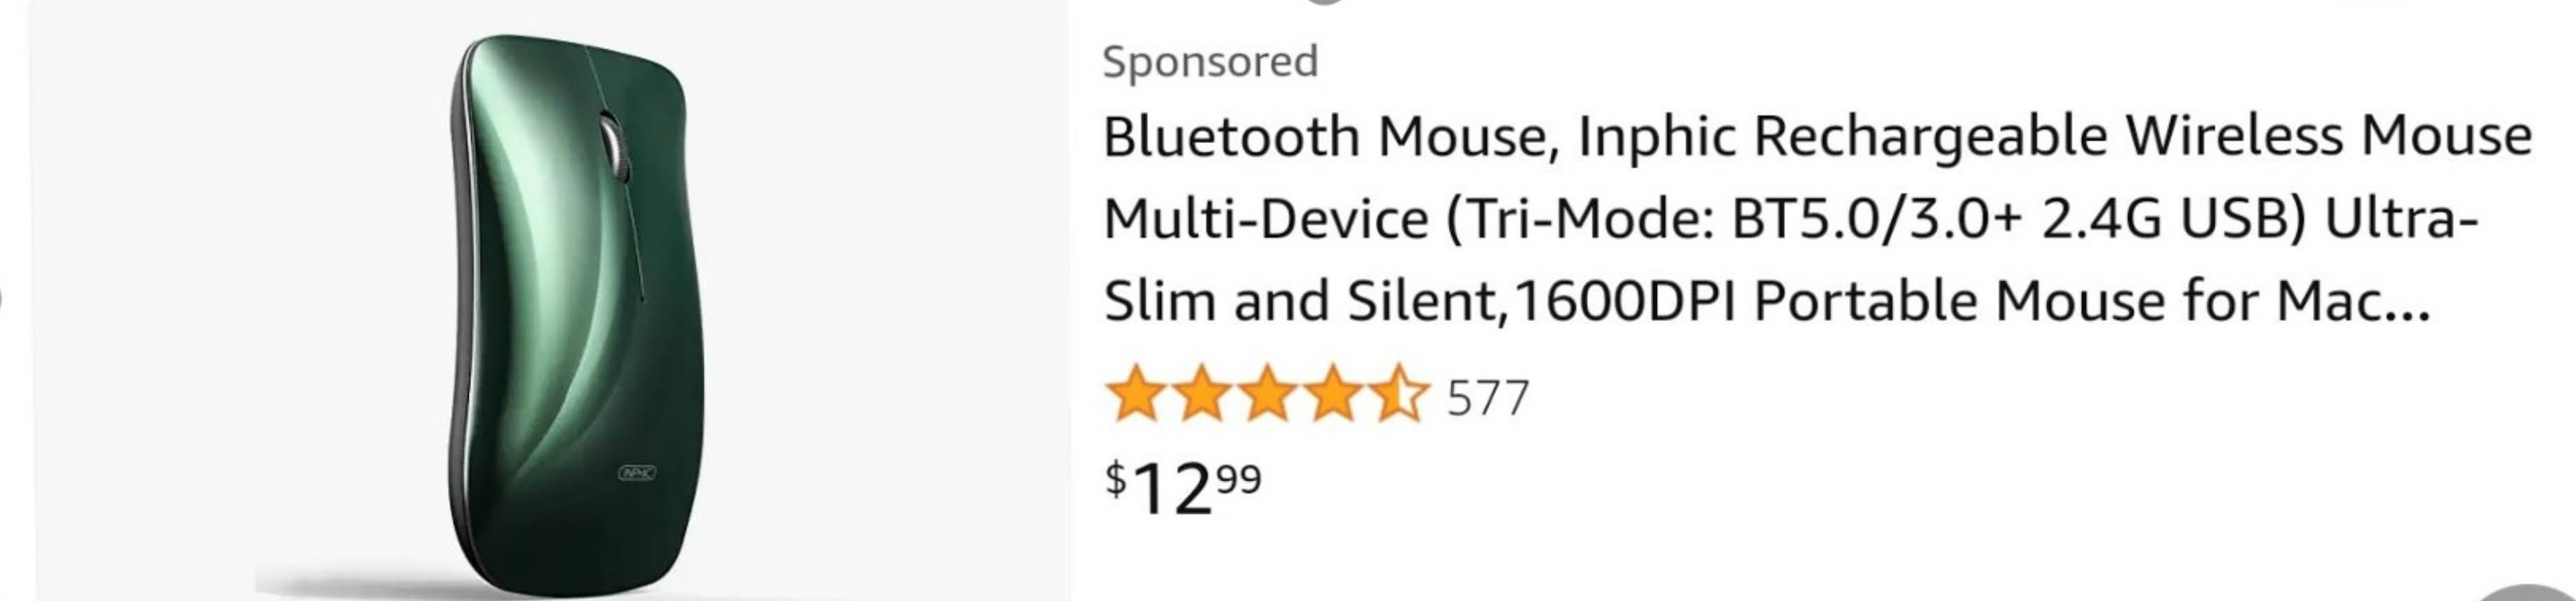 INPHIC Slim Sexy Rechargeable Bluetooth Mouse